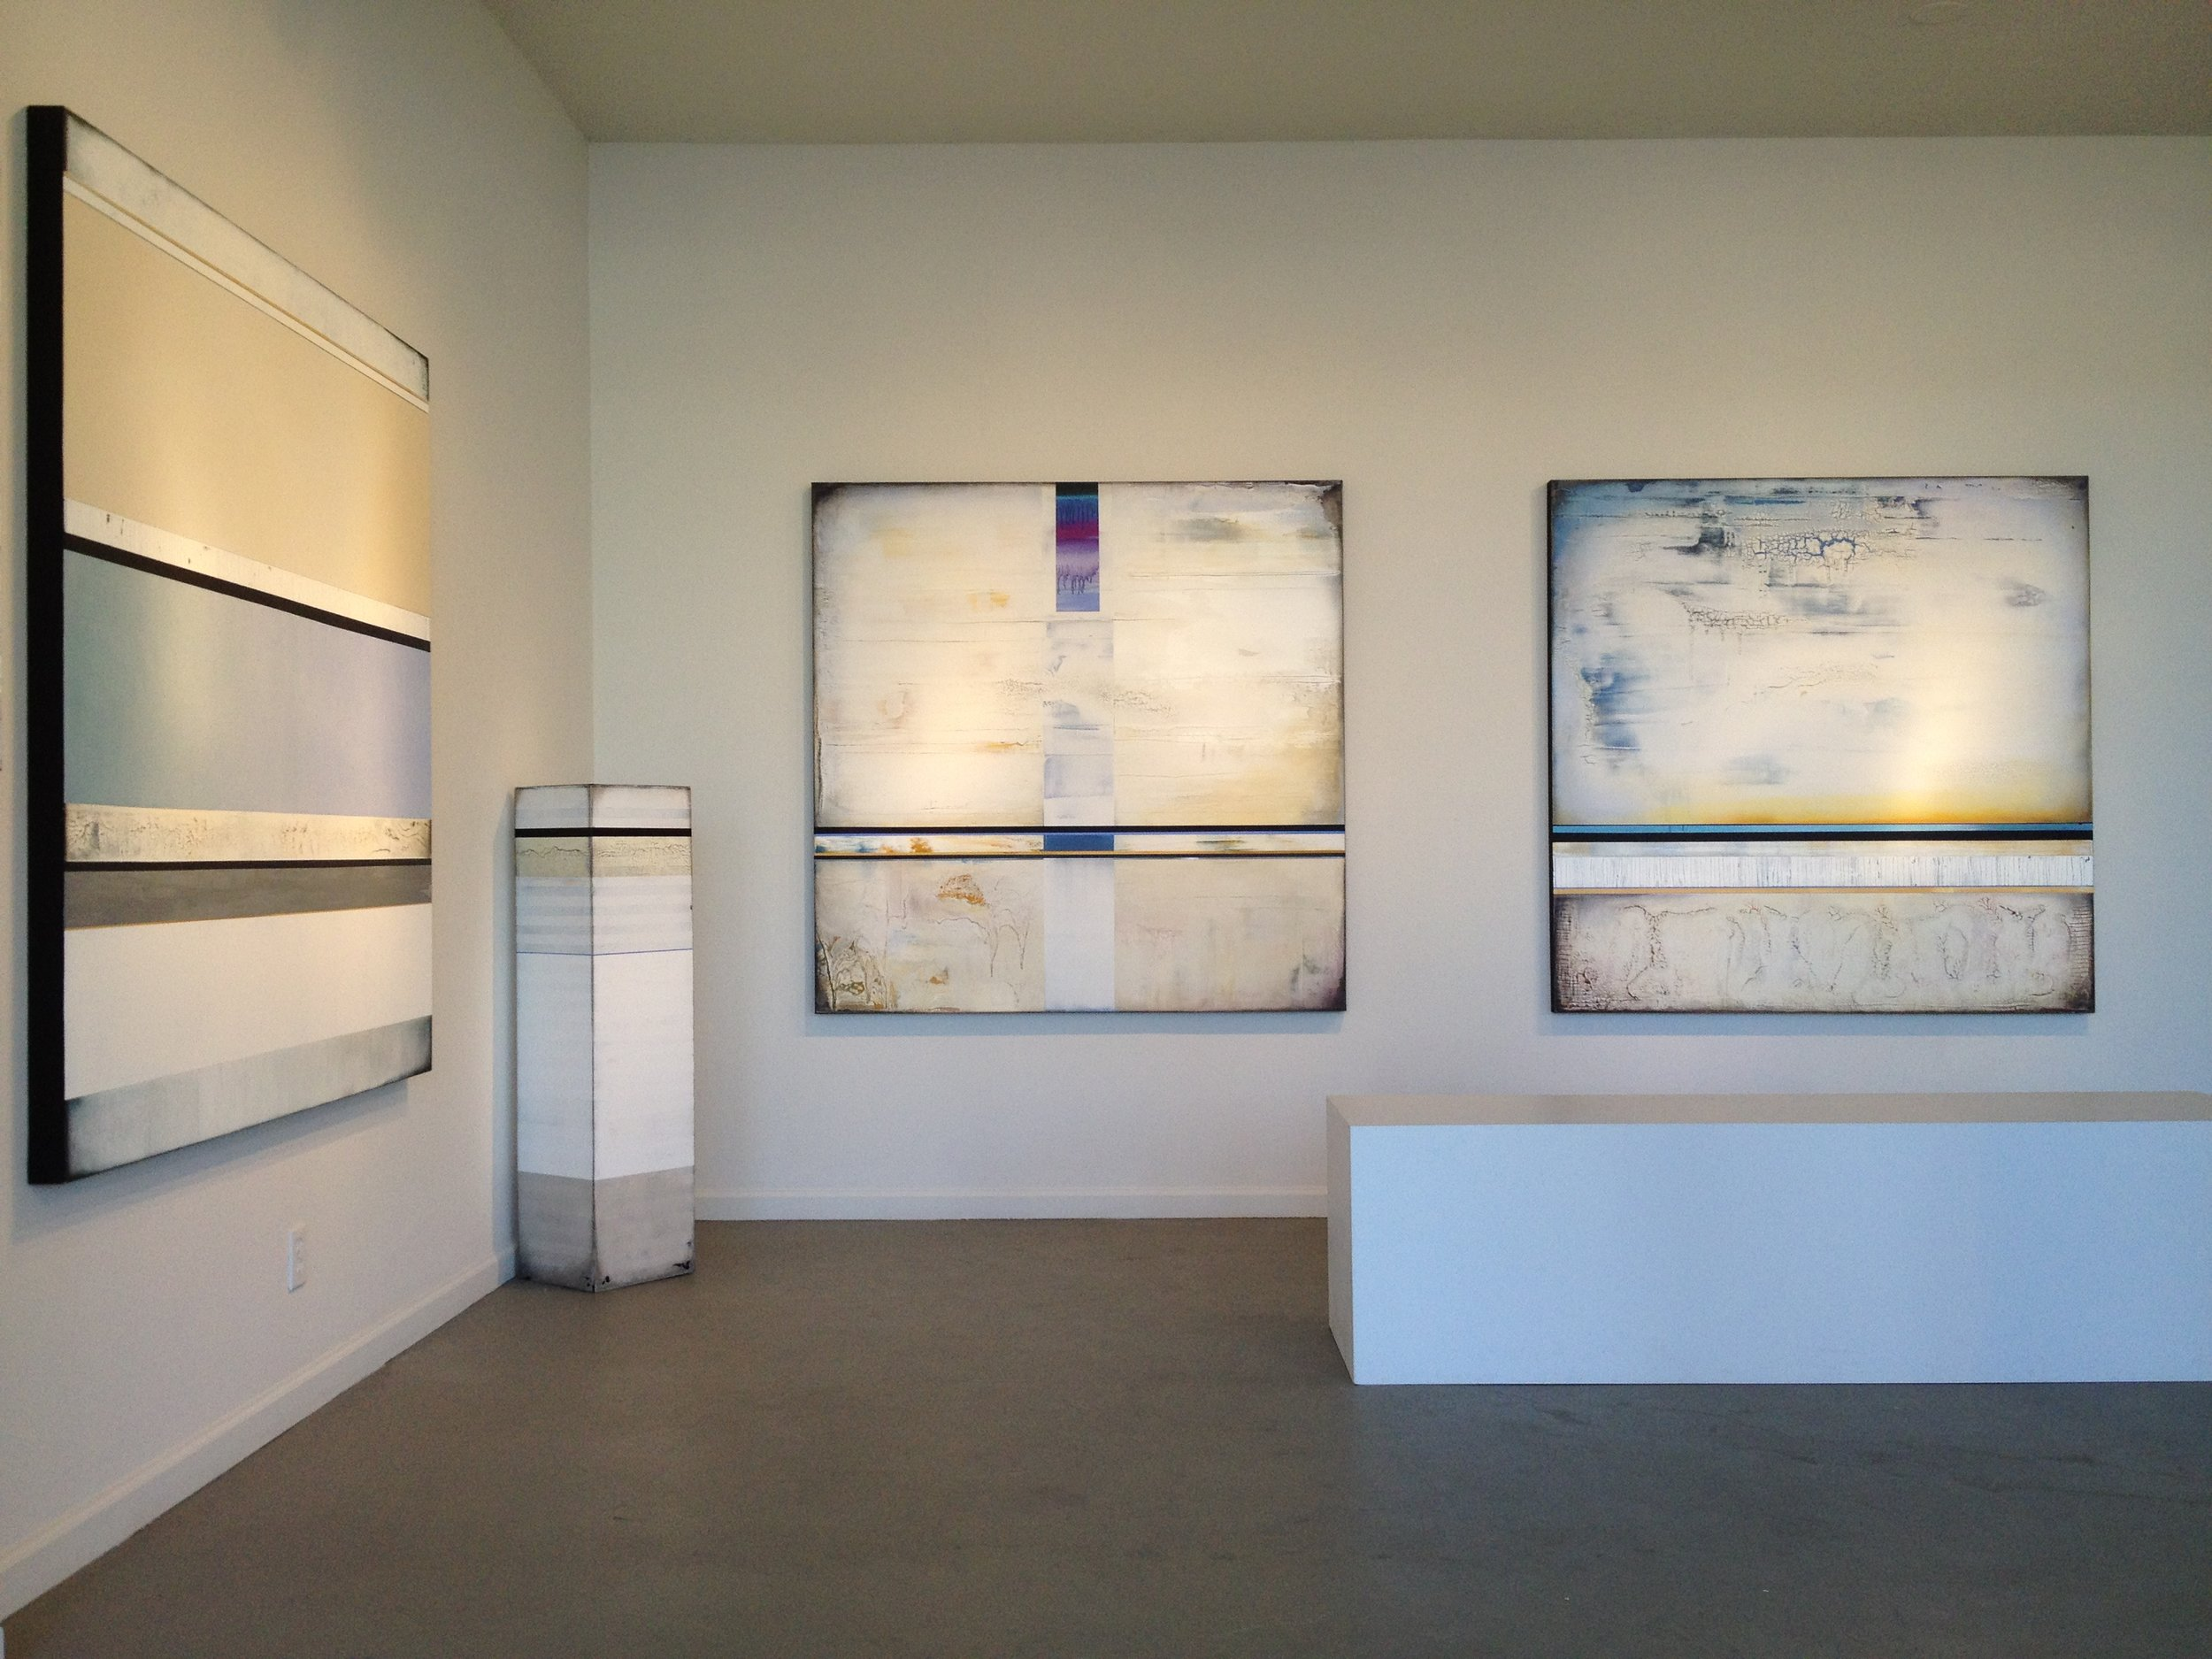 RESTRAINT, 2015 solo exhibition at Archangel Gallery, Palm Springs, CA